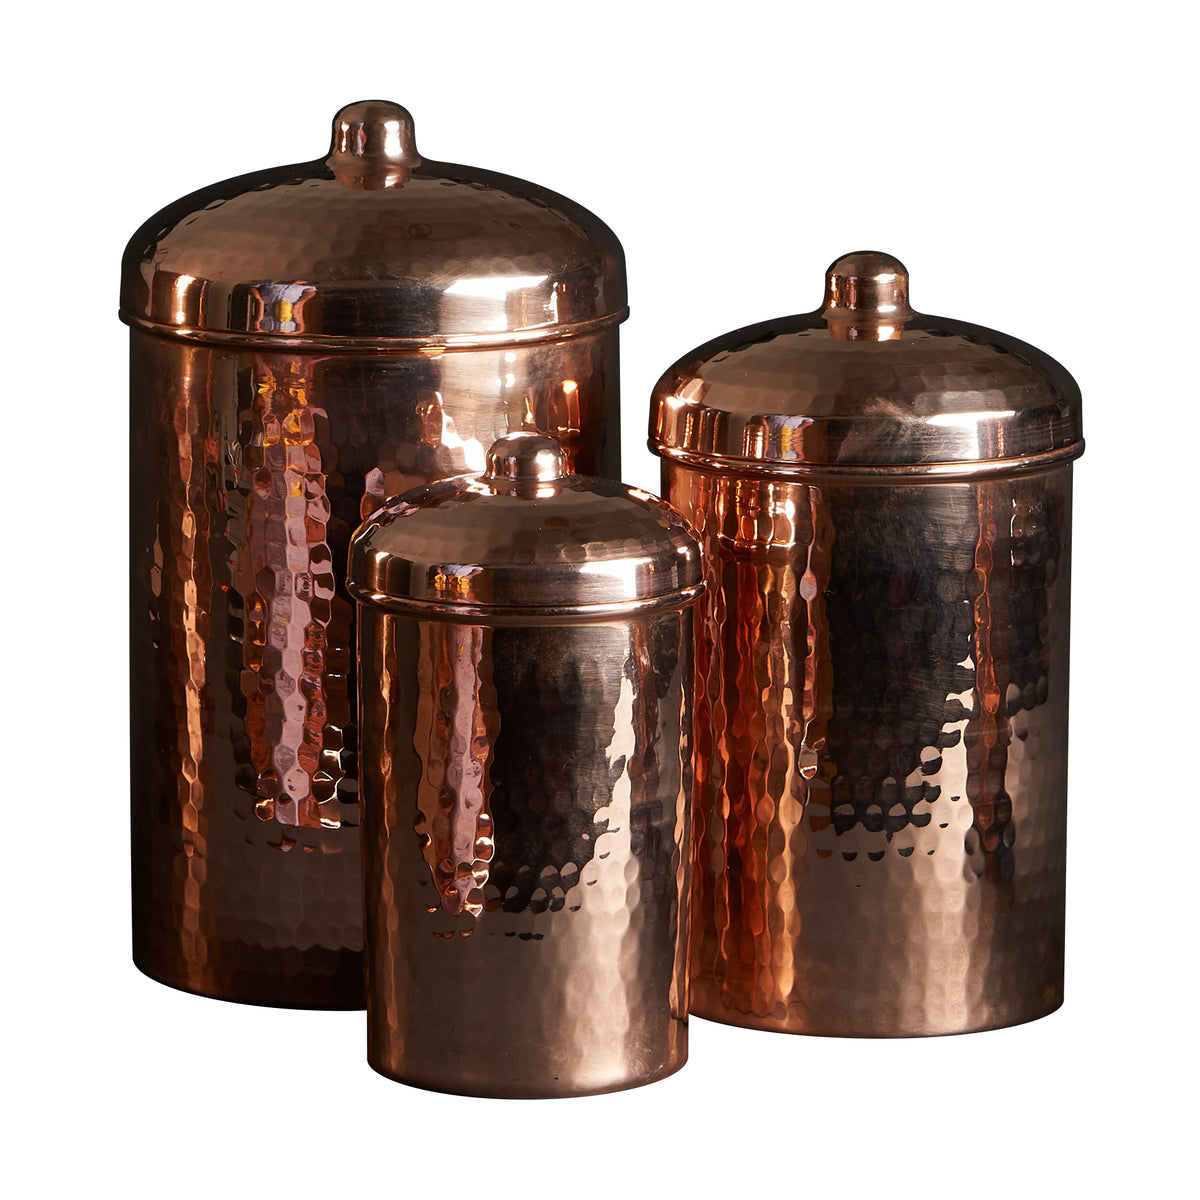 Copper Kitchen Canisters - Small Set, 3 Pieces